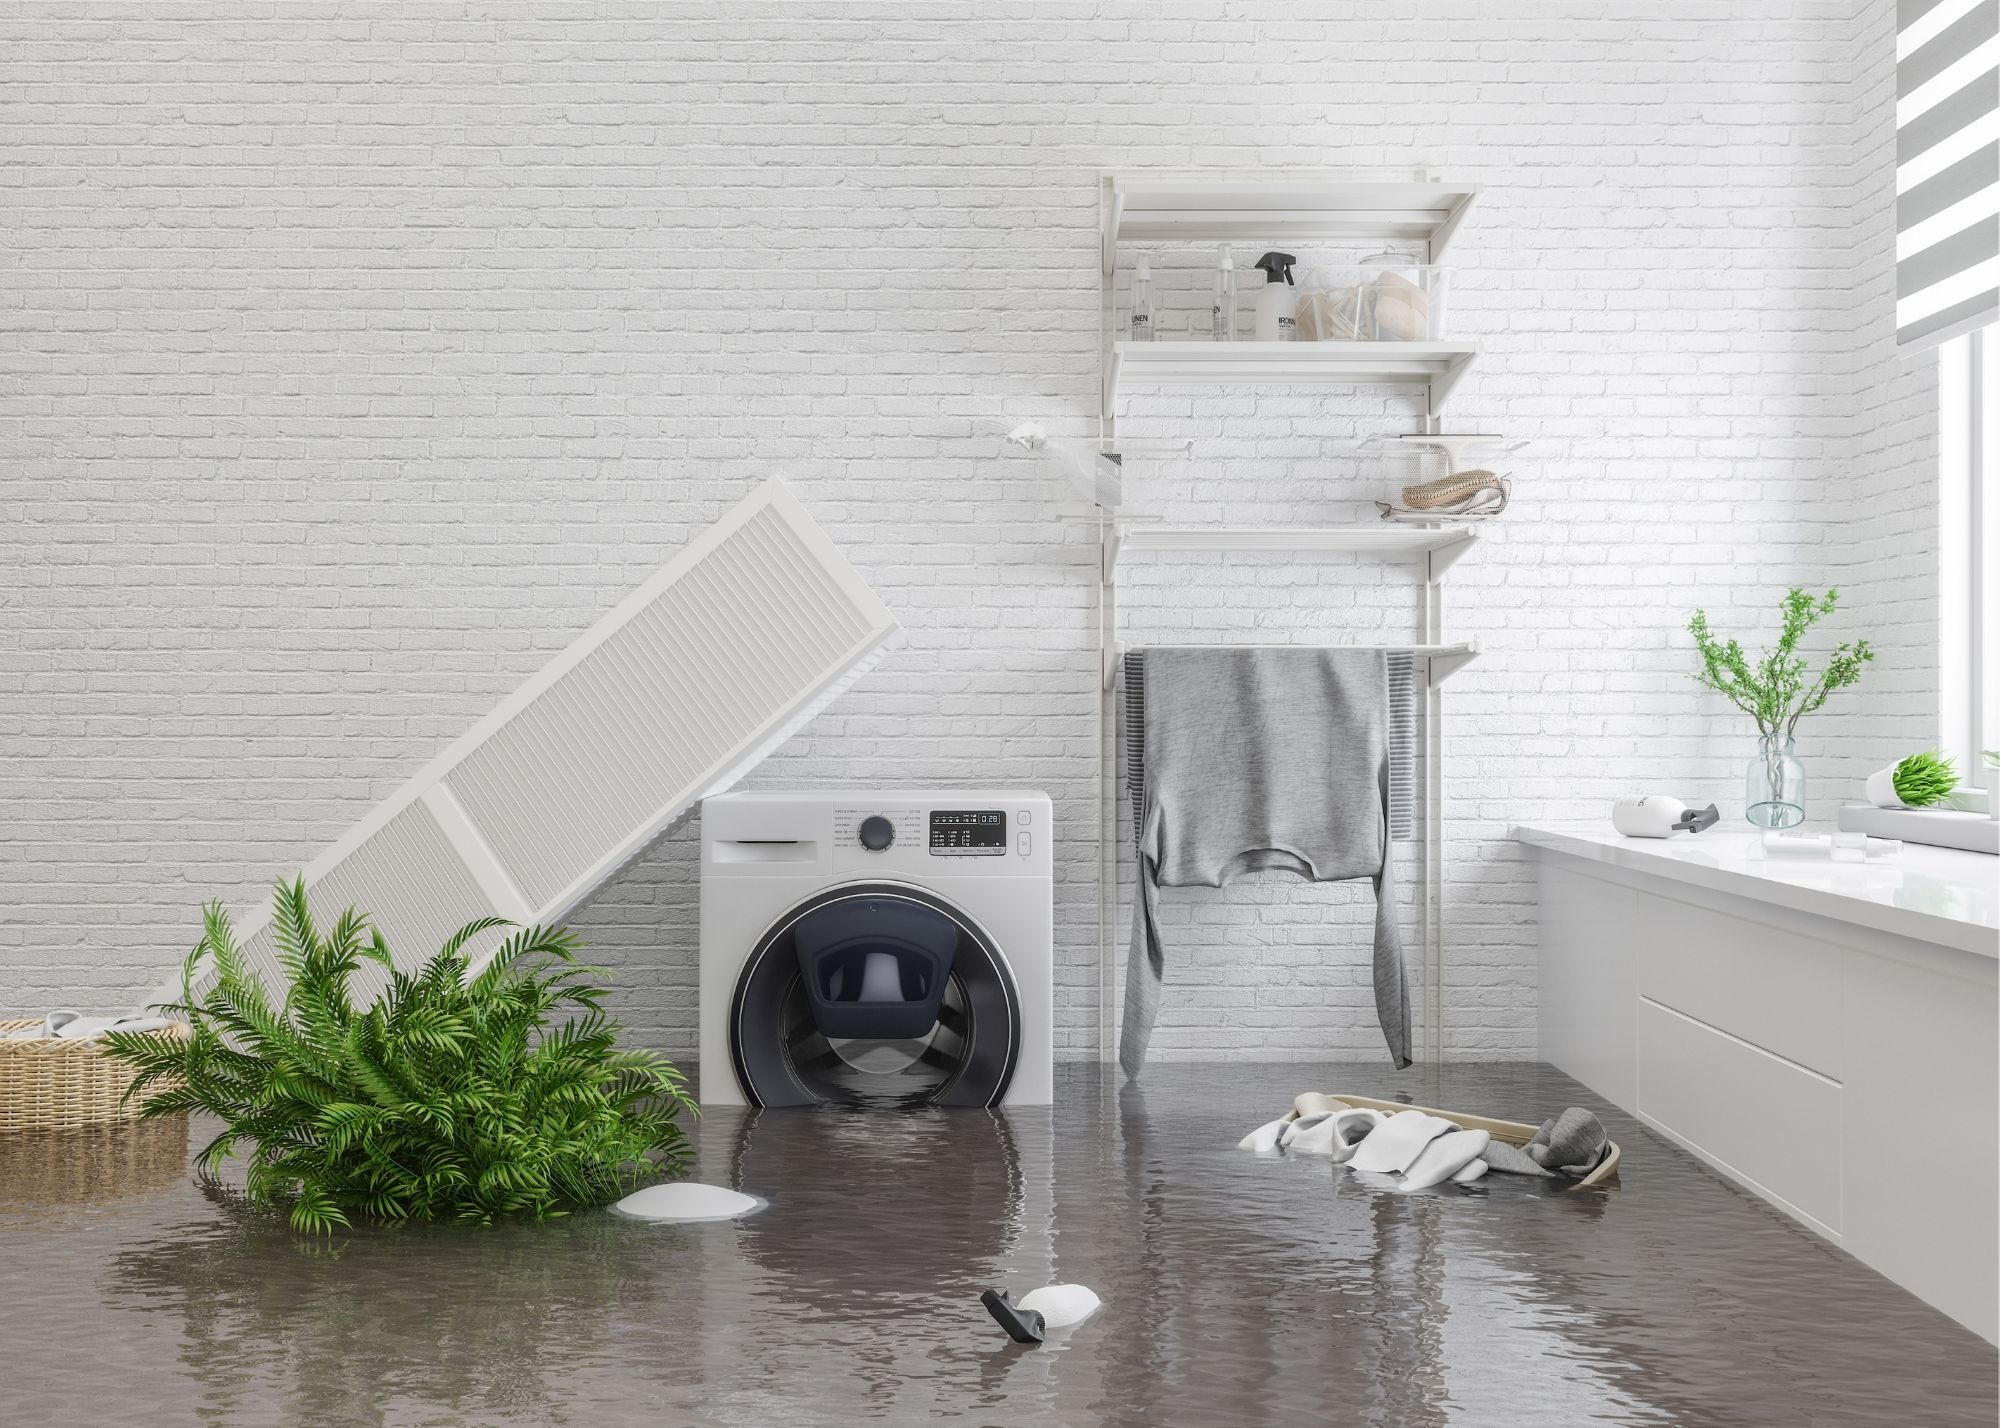 Water Damage Experts of Agoura Hills